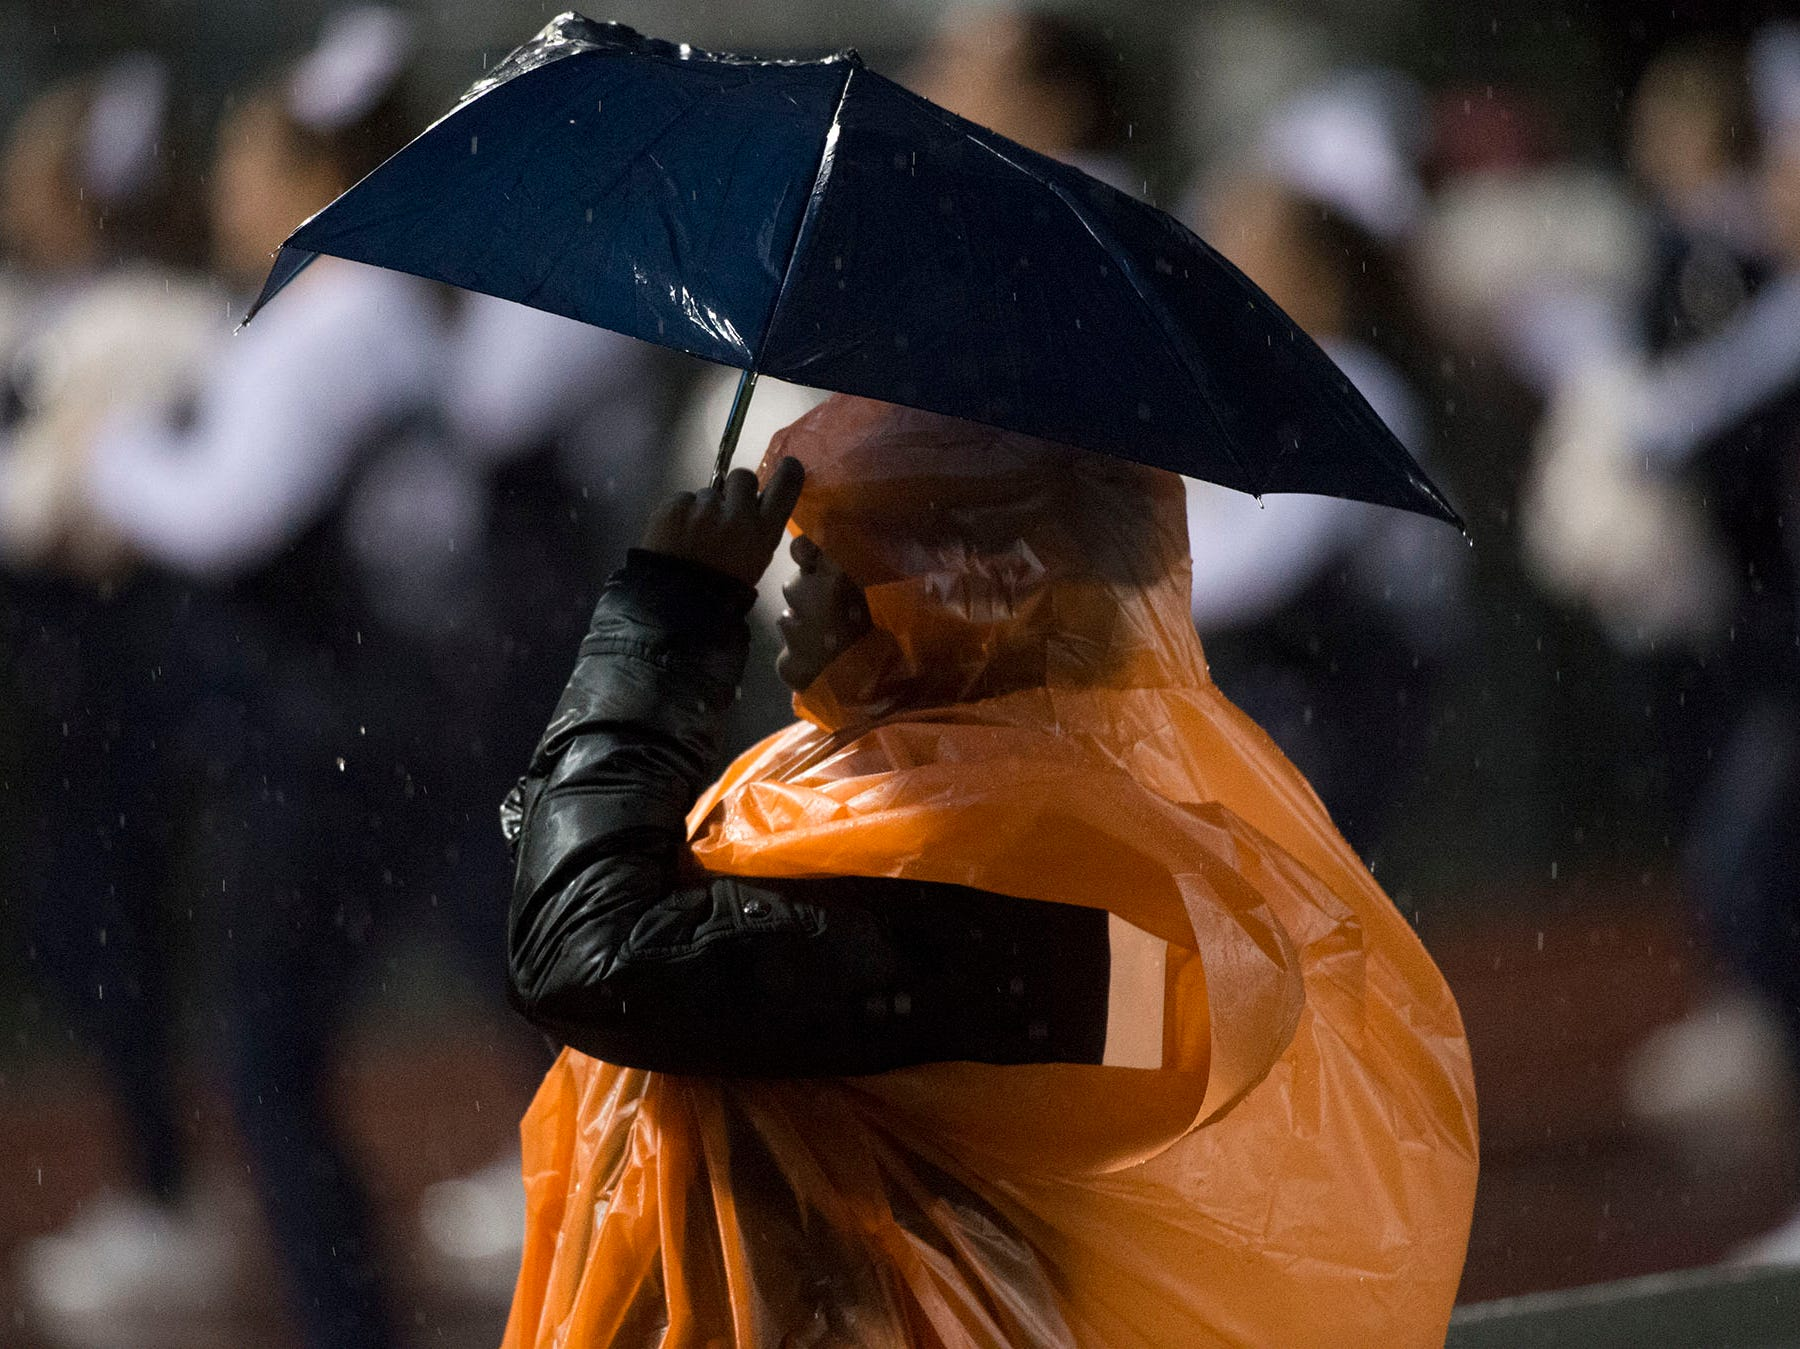 Rain fell for four quarters. Chambersburg Trojans dropped a close game 20-17 to Manheim Township Blue Streaks in the rain during PIAA District 3 playoff football on Friday, Nov. 2, 2018.